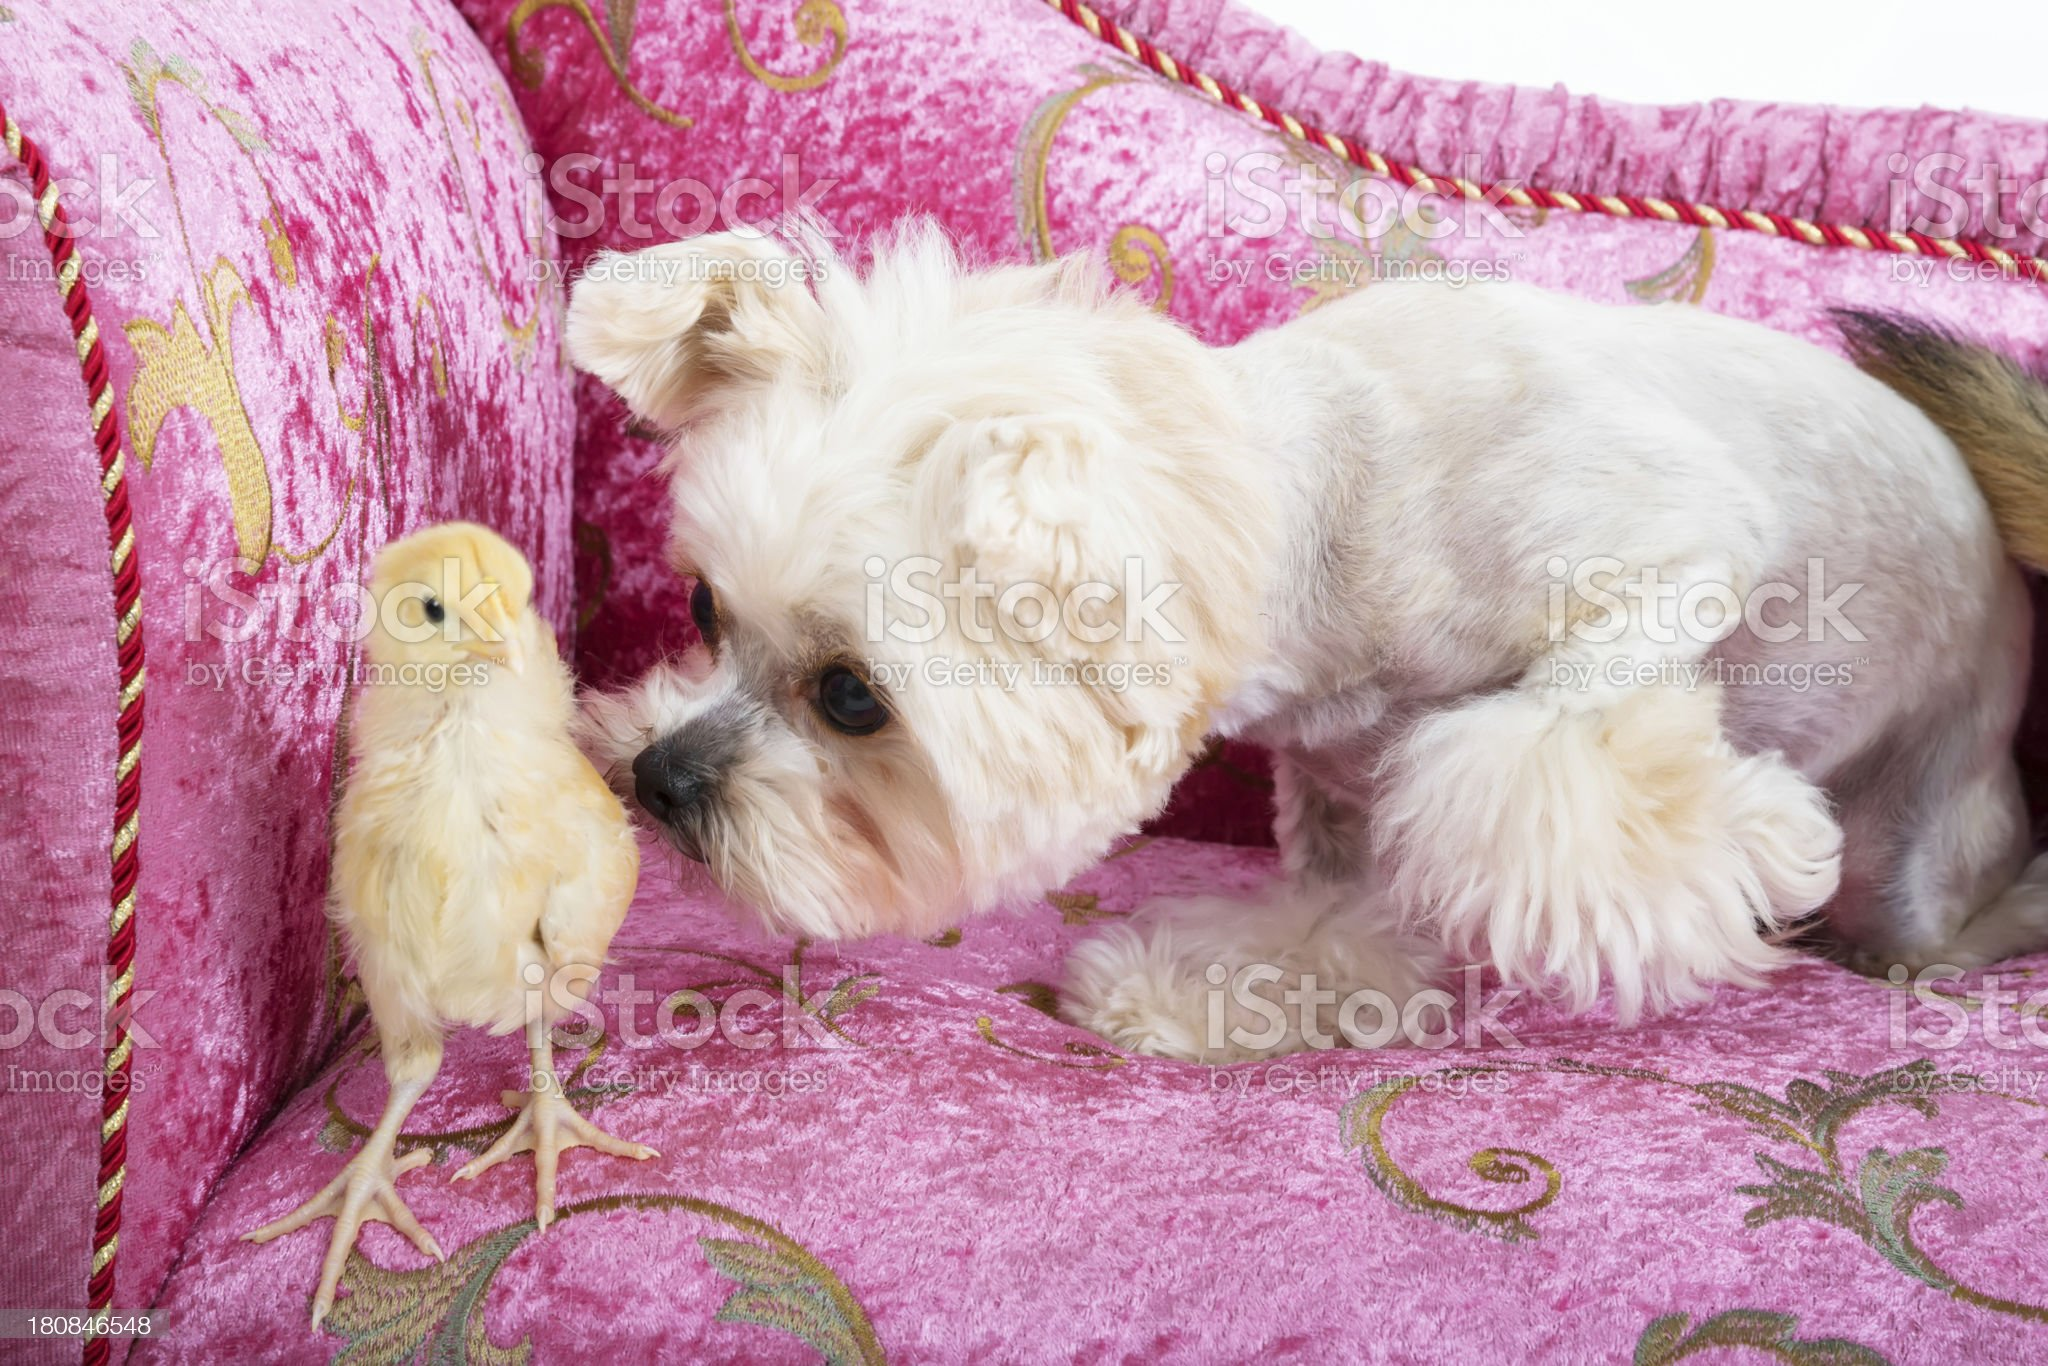 Fuzzy dog, fuzzy chick and fuzzy couch are a great team! royalty-free stock photo